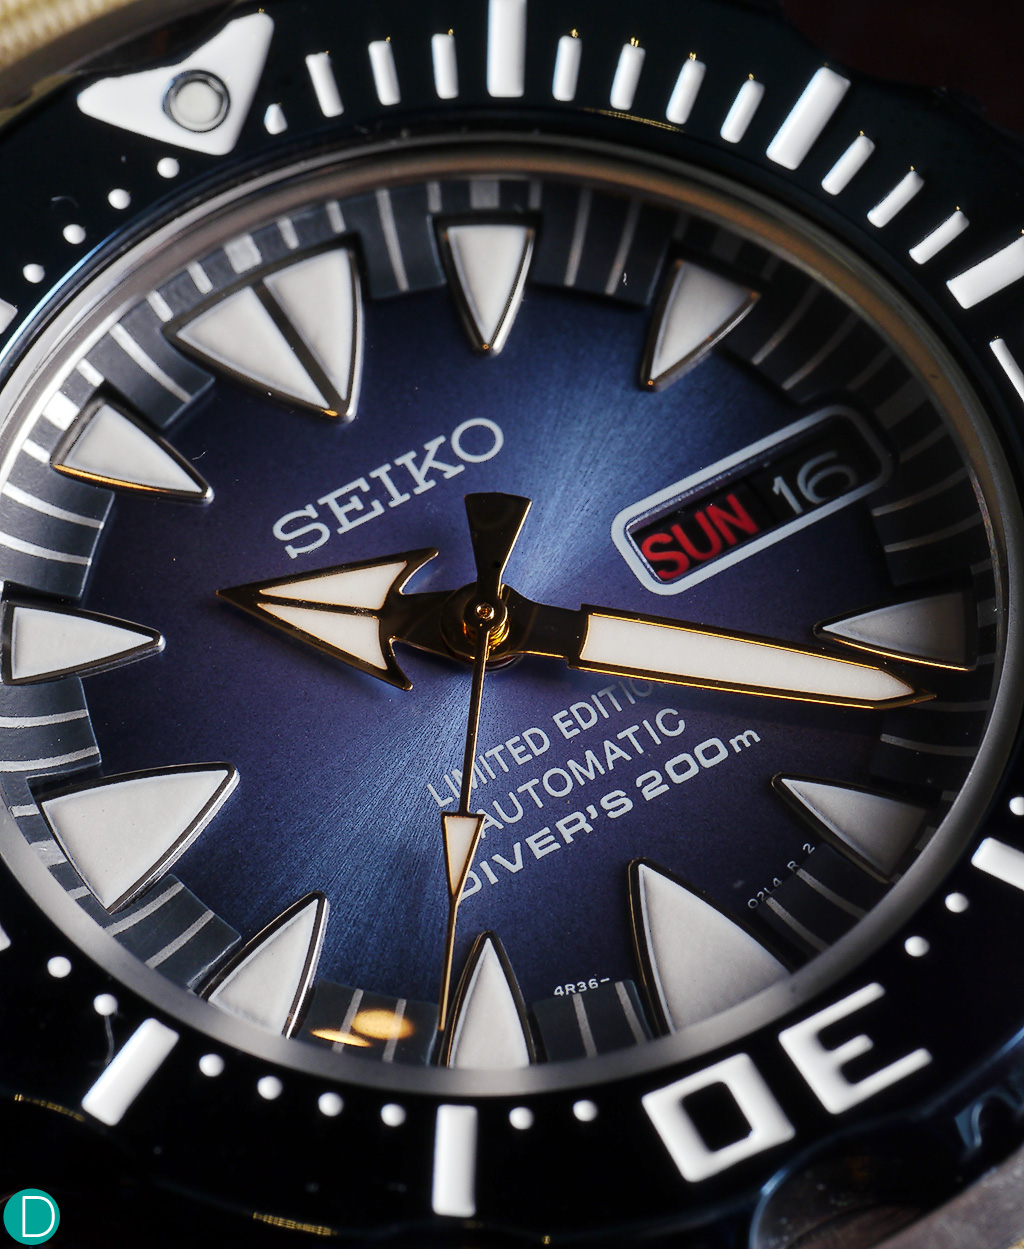 The beautiful hue of the blue dial drew me magnetically to the watch.